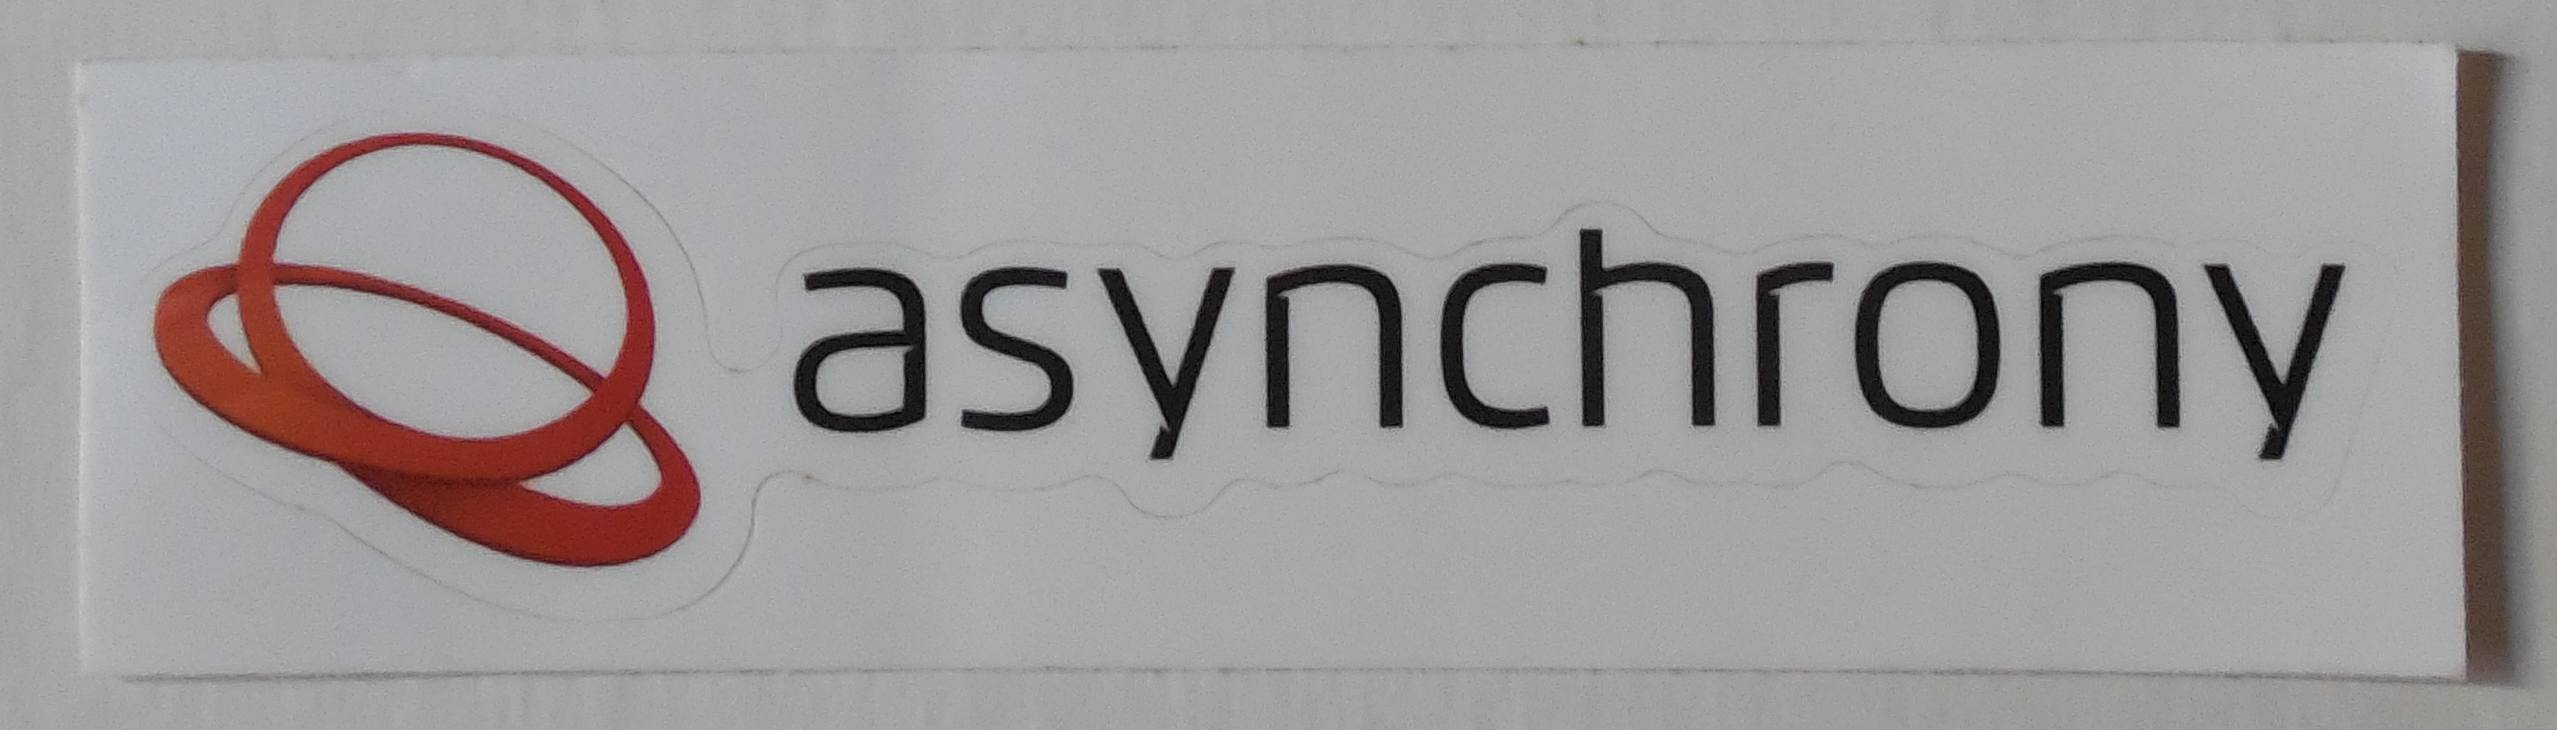 asynchrony laptop sticker